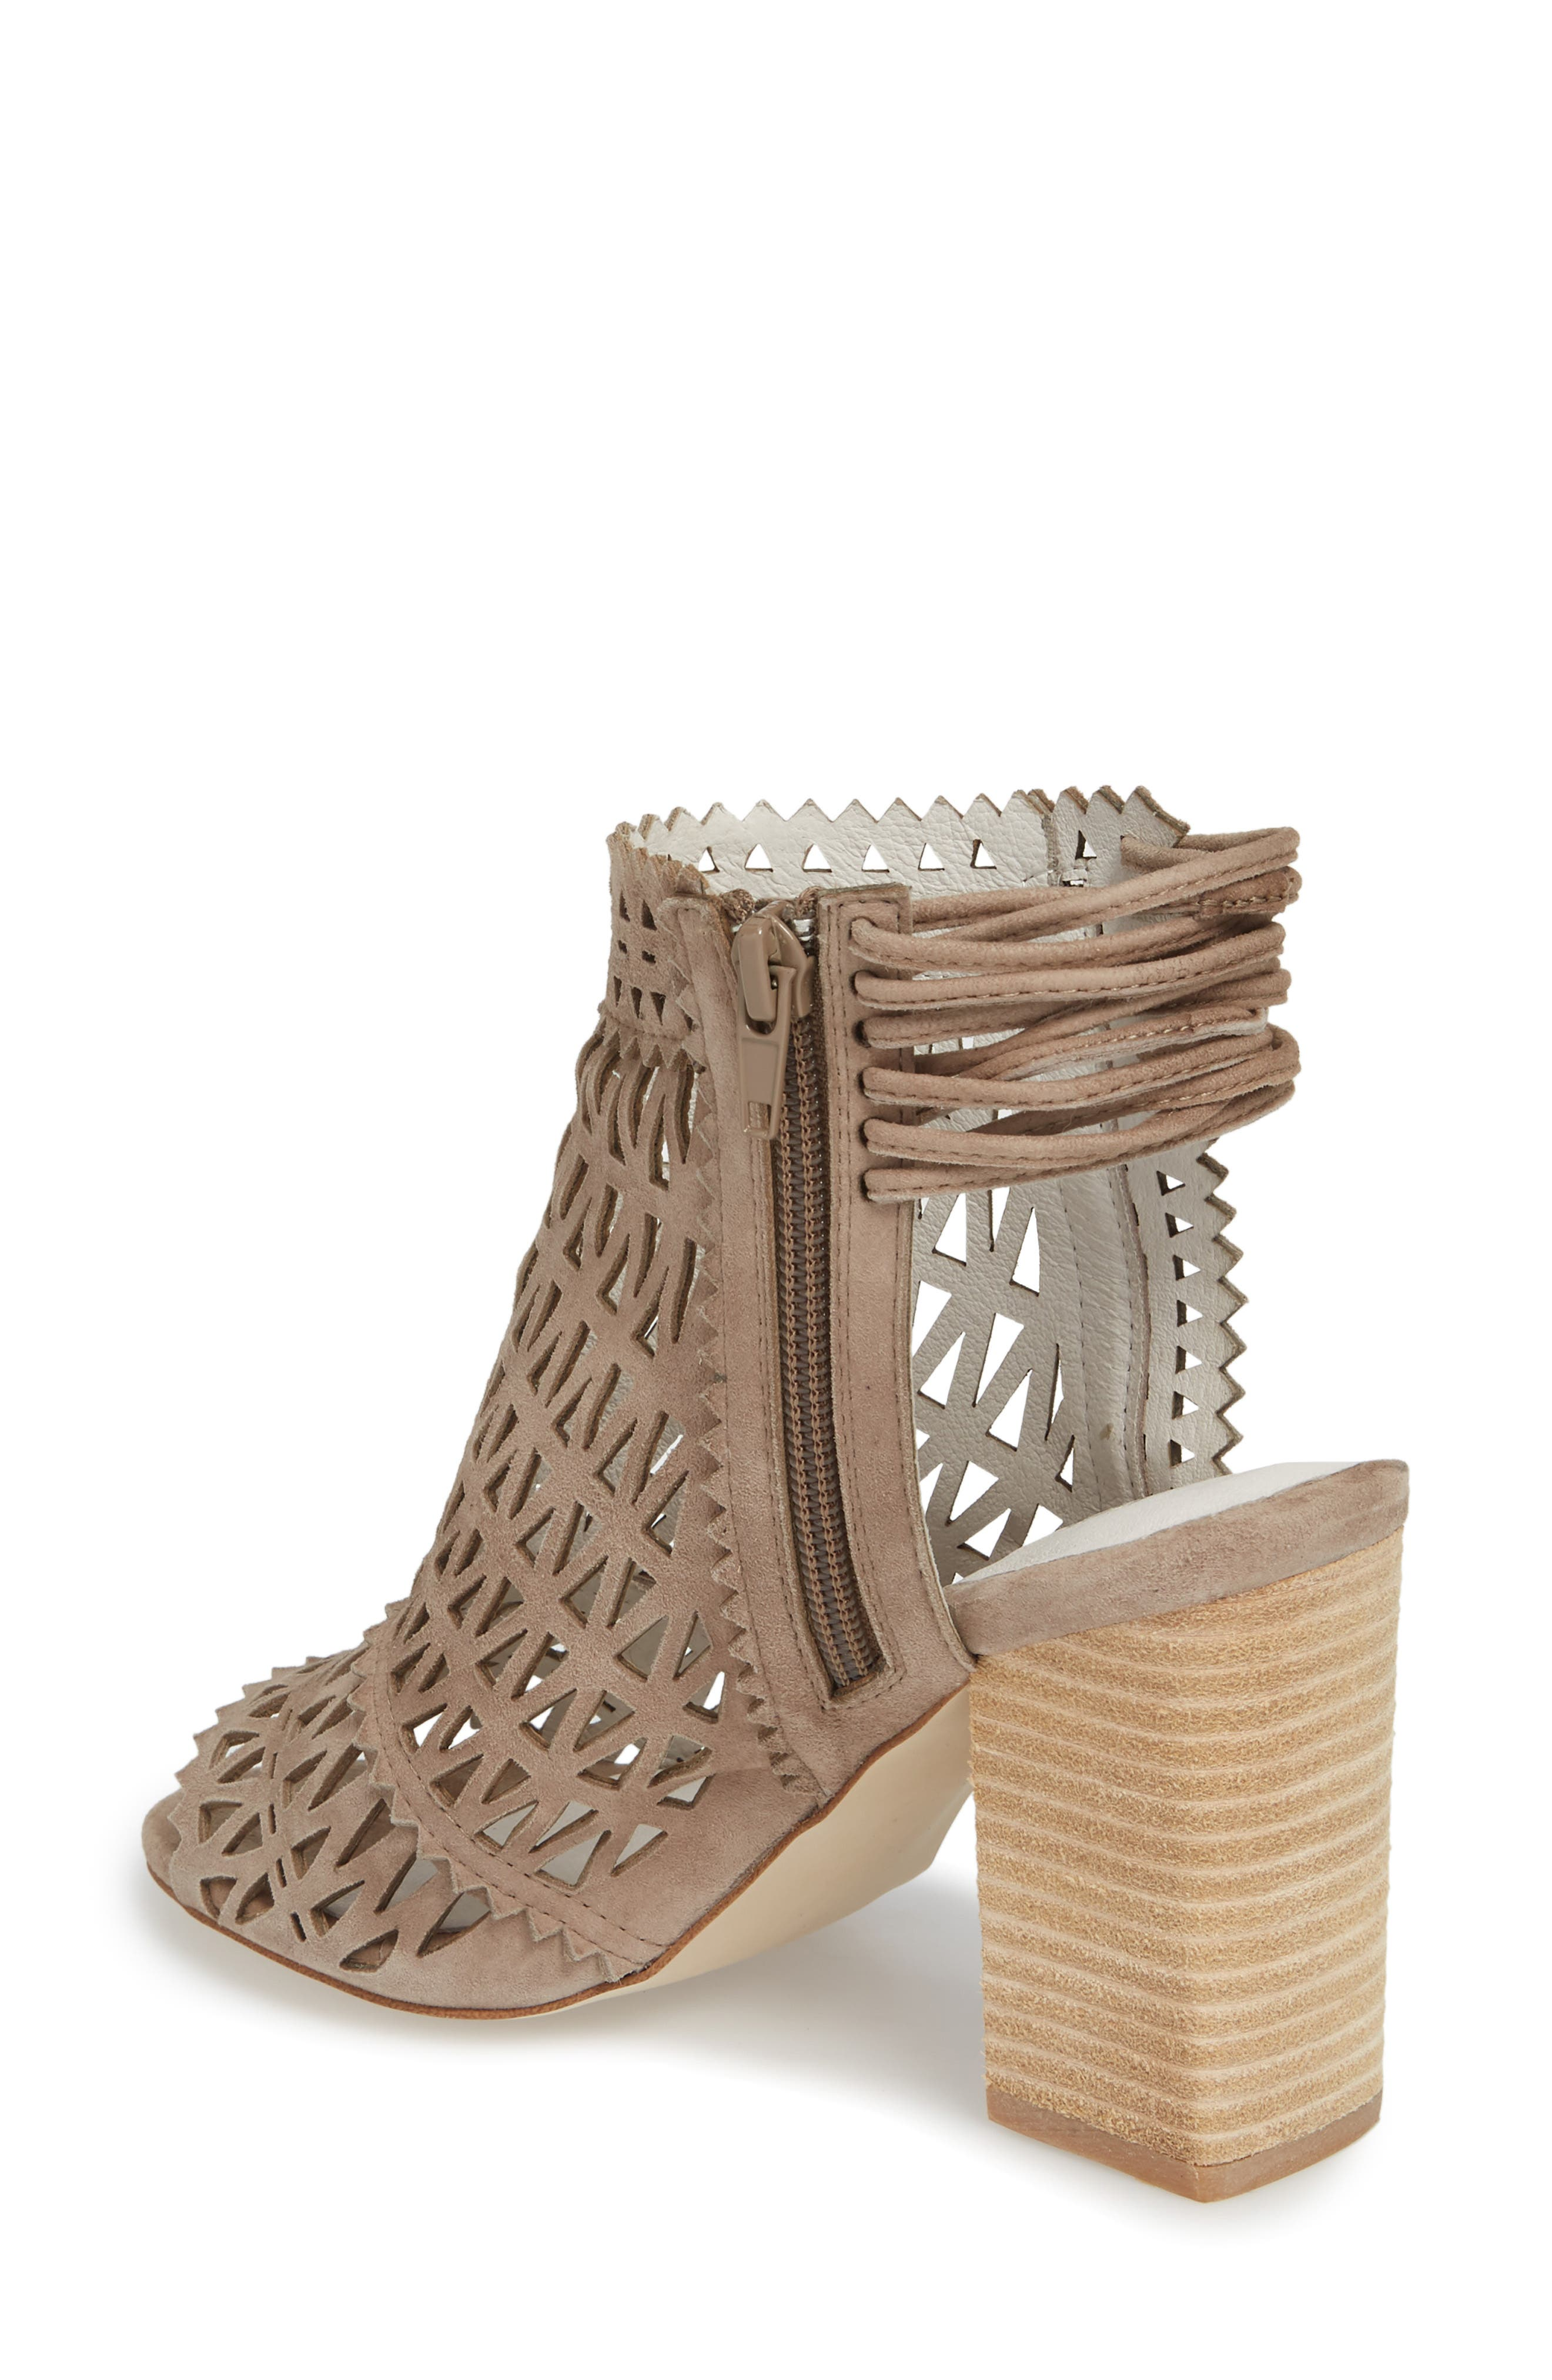 Ottawa Sandal,                             Alternate thumbnail 2, color,                             TAUPE SUEDE